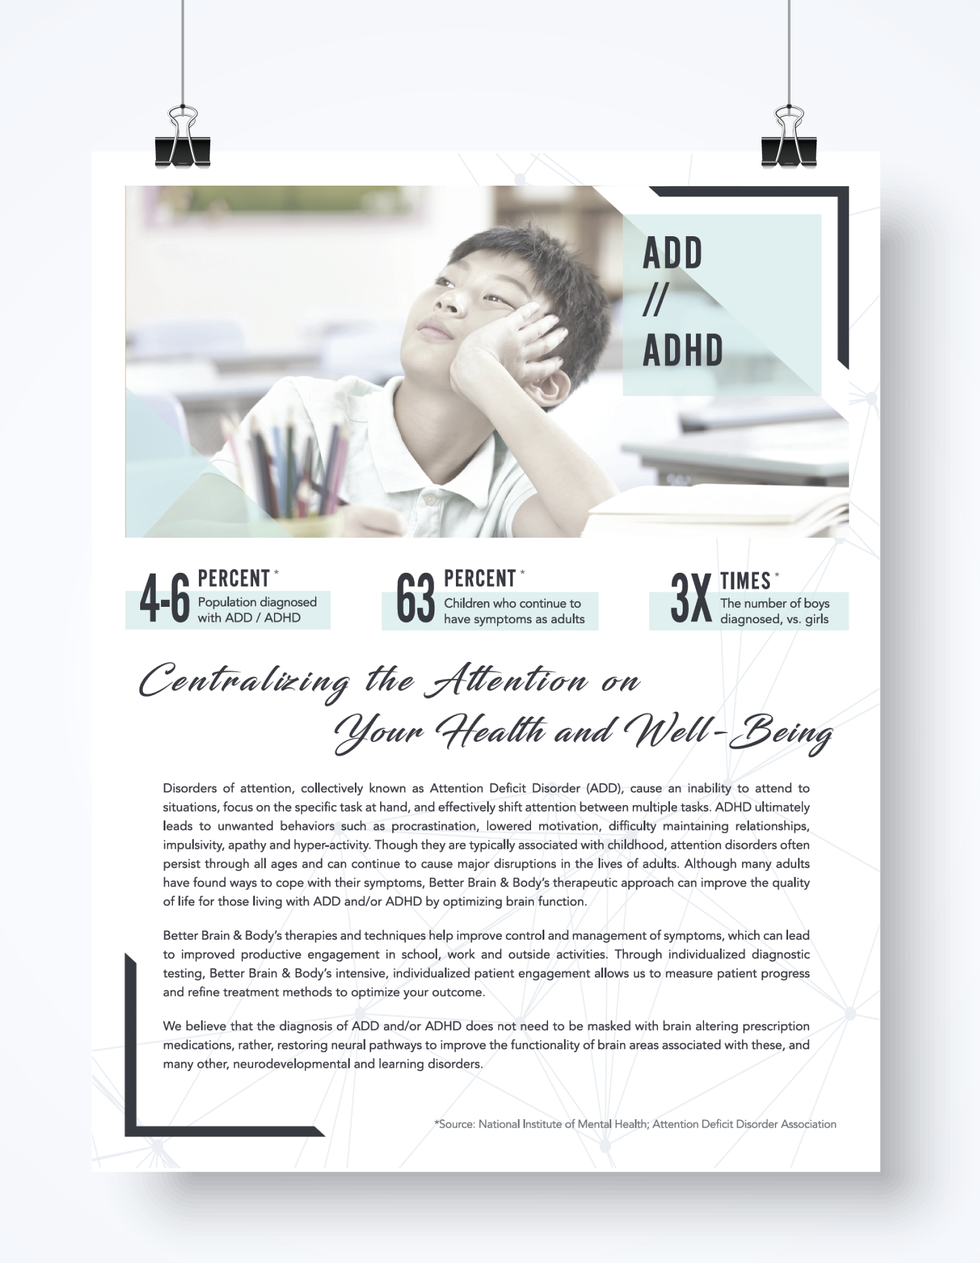 Method331 Creative | Charlotte, NC | Graphic + Web Design Agency // Wedding Stationary Supplier